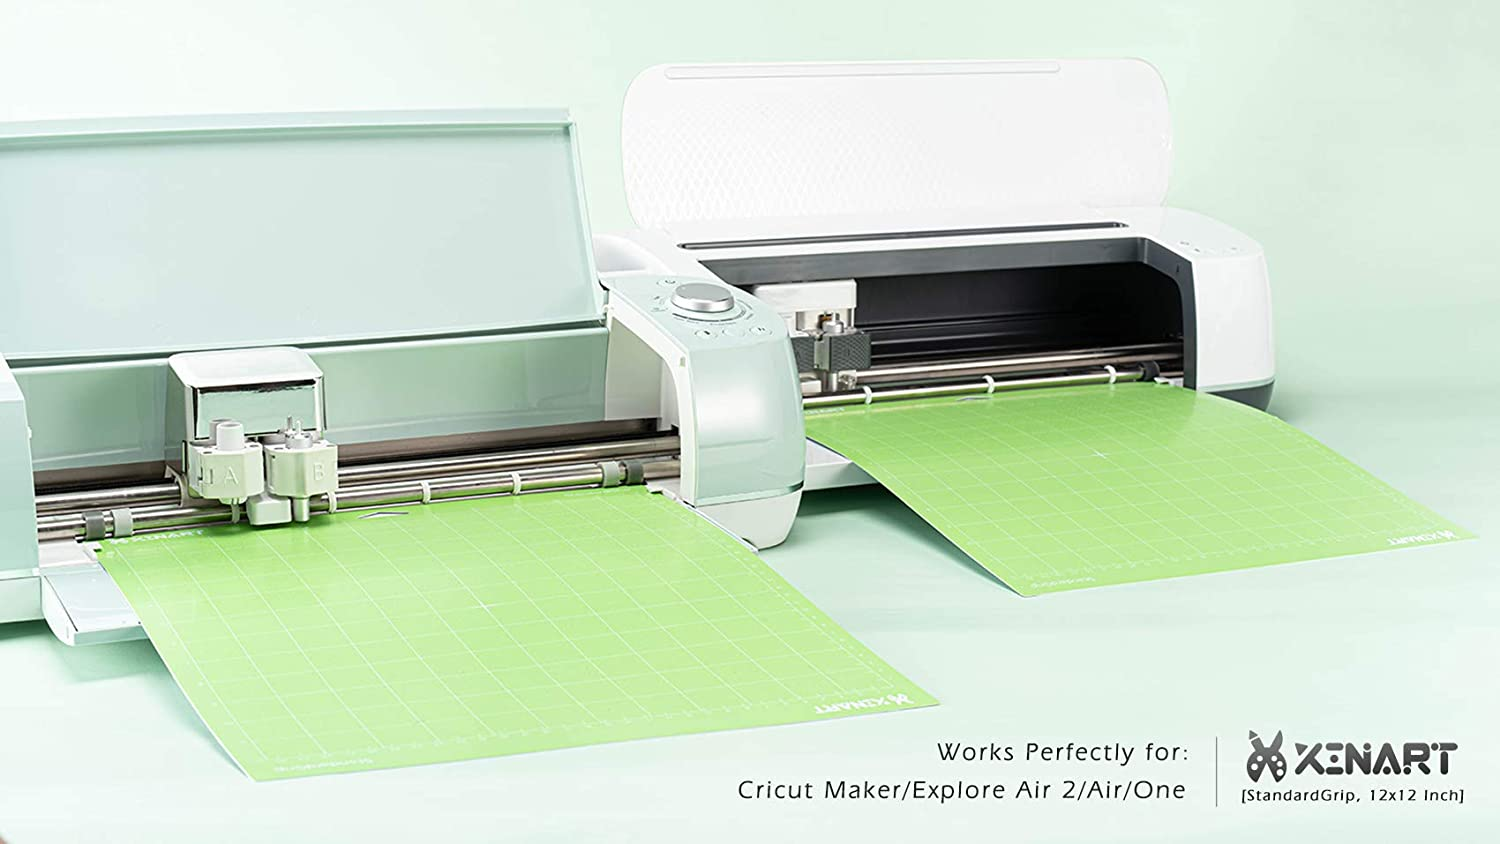 CAREGY Replacement Cutting Mat 12x12 3Pack for Cricut Maker//Explore Air 2//Silhouette Cameo Adhesive Sticky Variety-StrongGrip,LightGrip,StandardGrip